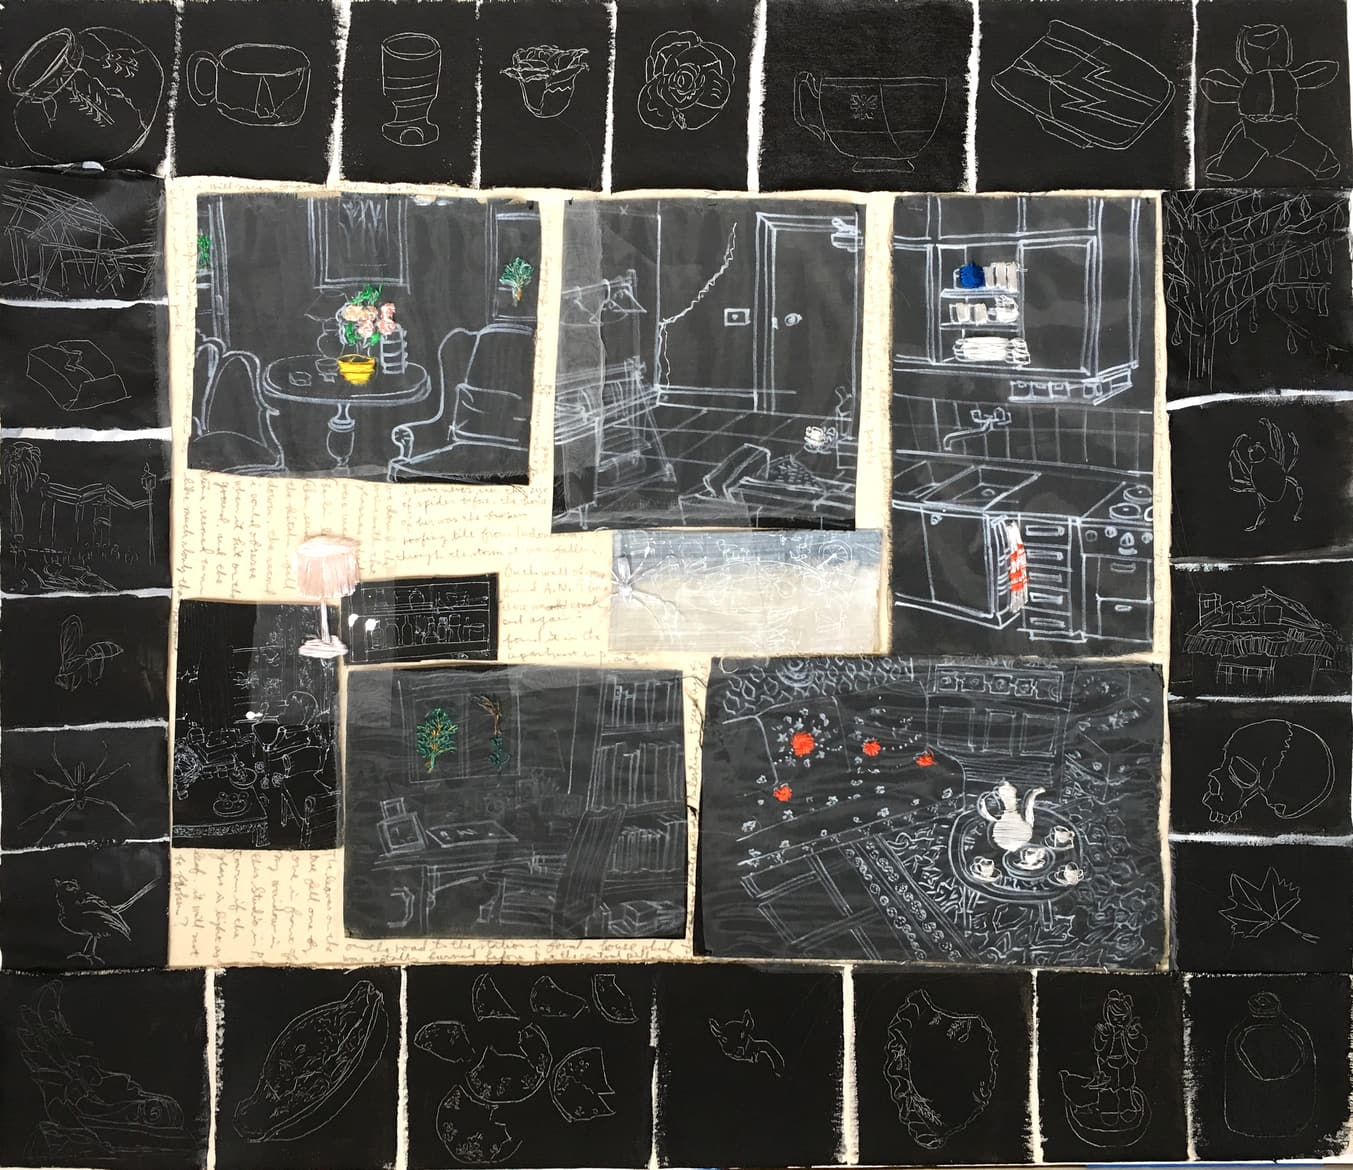 'The things to renovate 2 in P.City', 2014, 80 x 100 cm, Paper, drawing with permanent pen, Italian coloured synthetic cloth, Japanese silk thread